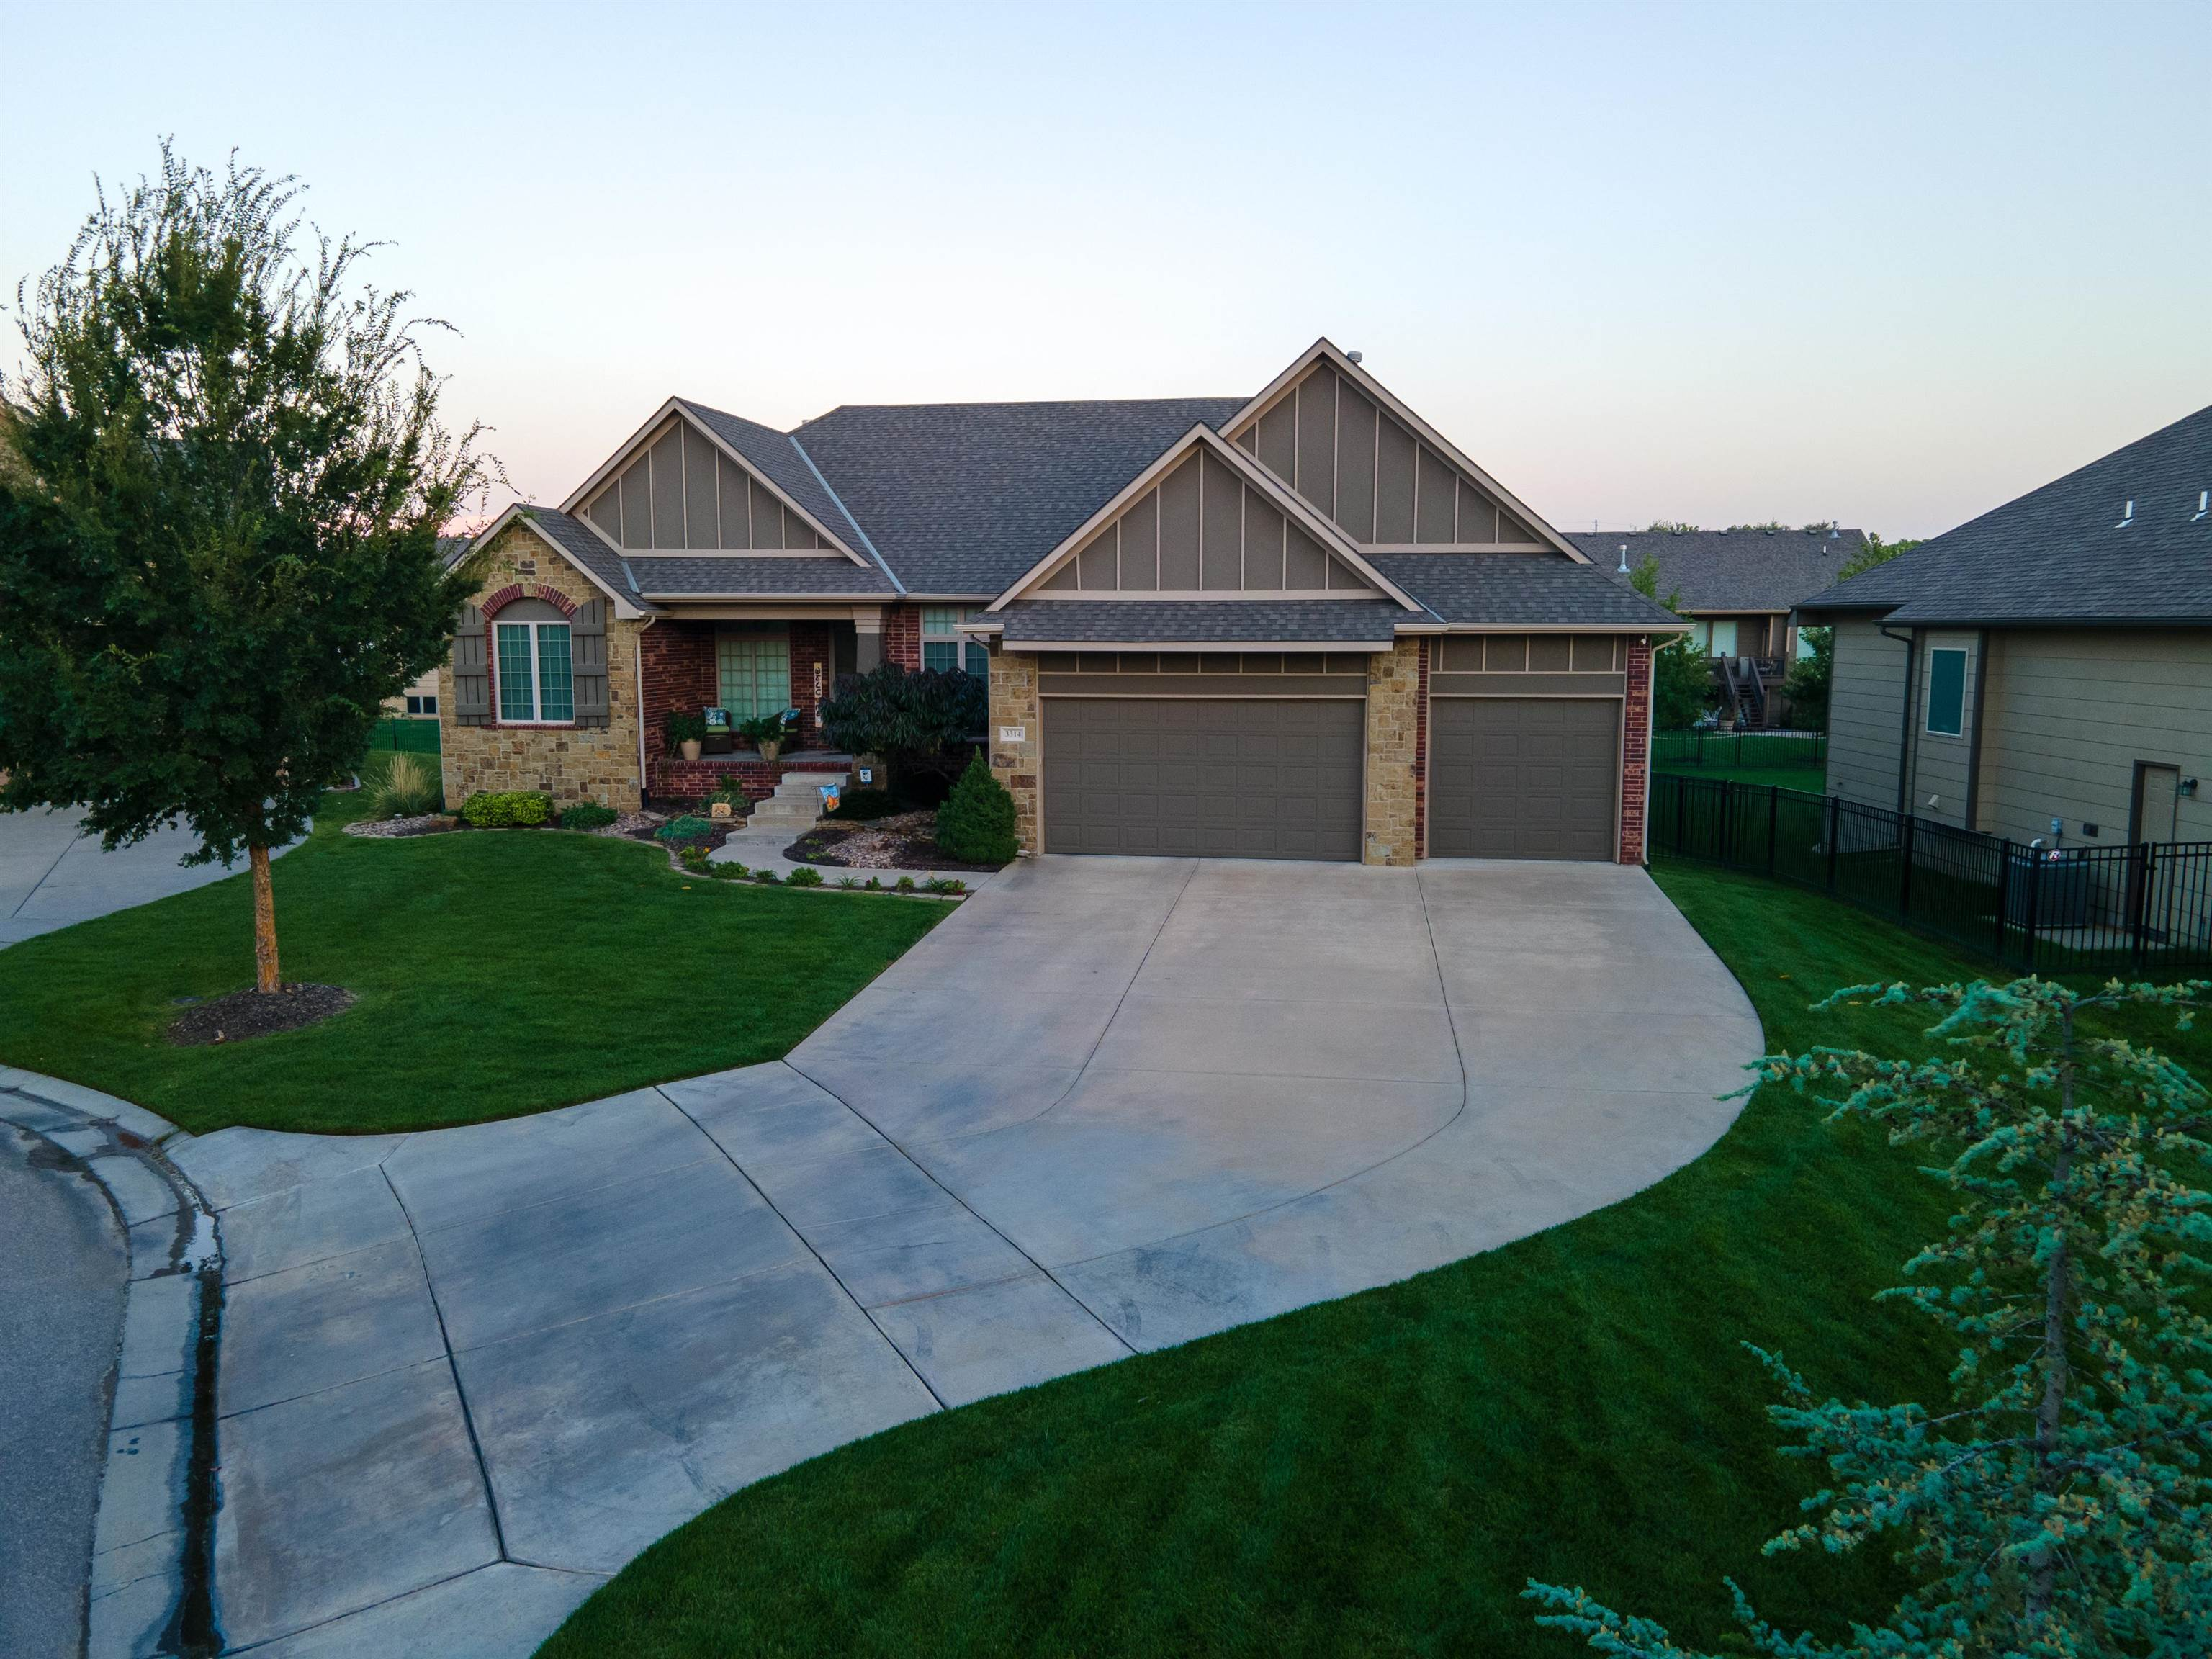 Beautiful 1 owner home located in the popular northwest neighborhood of Fox Ridge. Come take a look